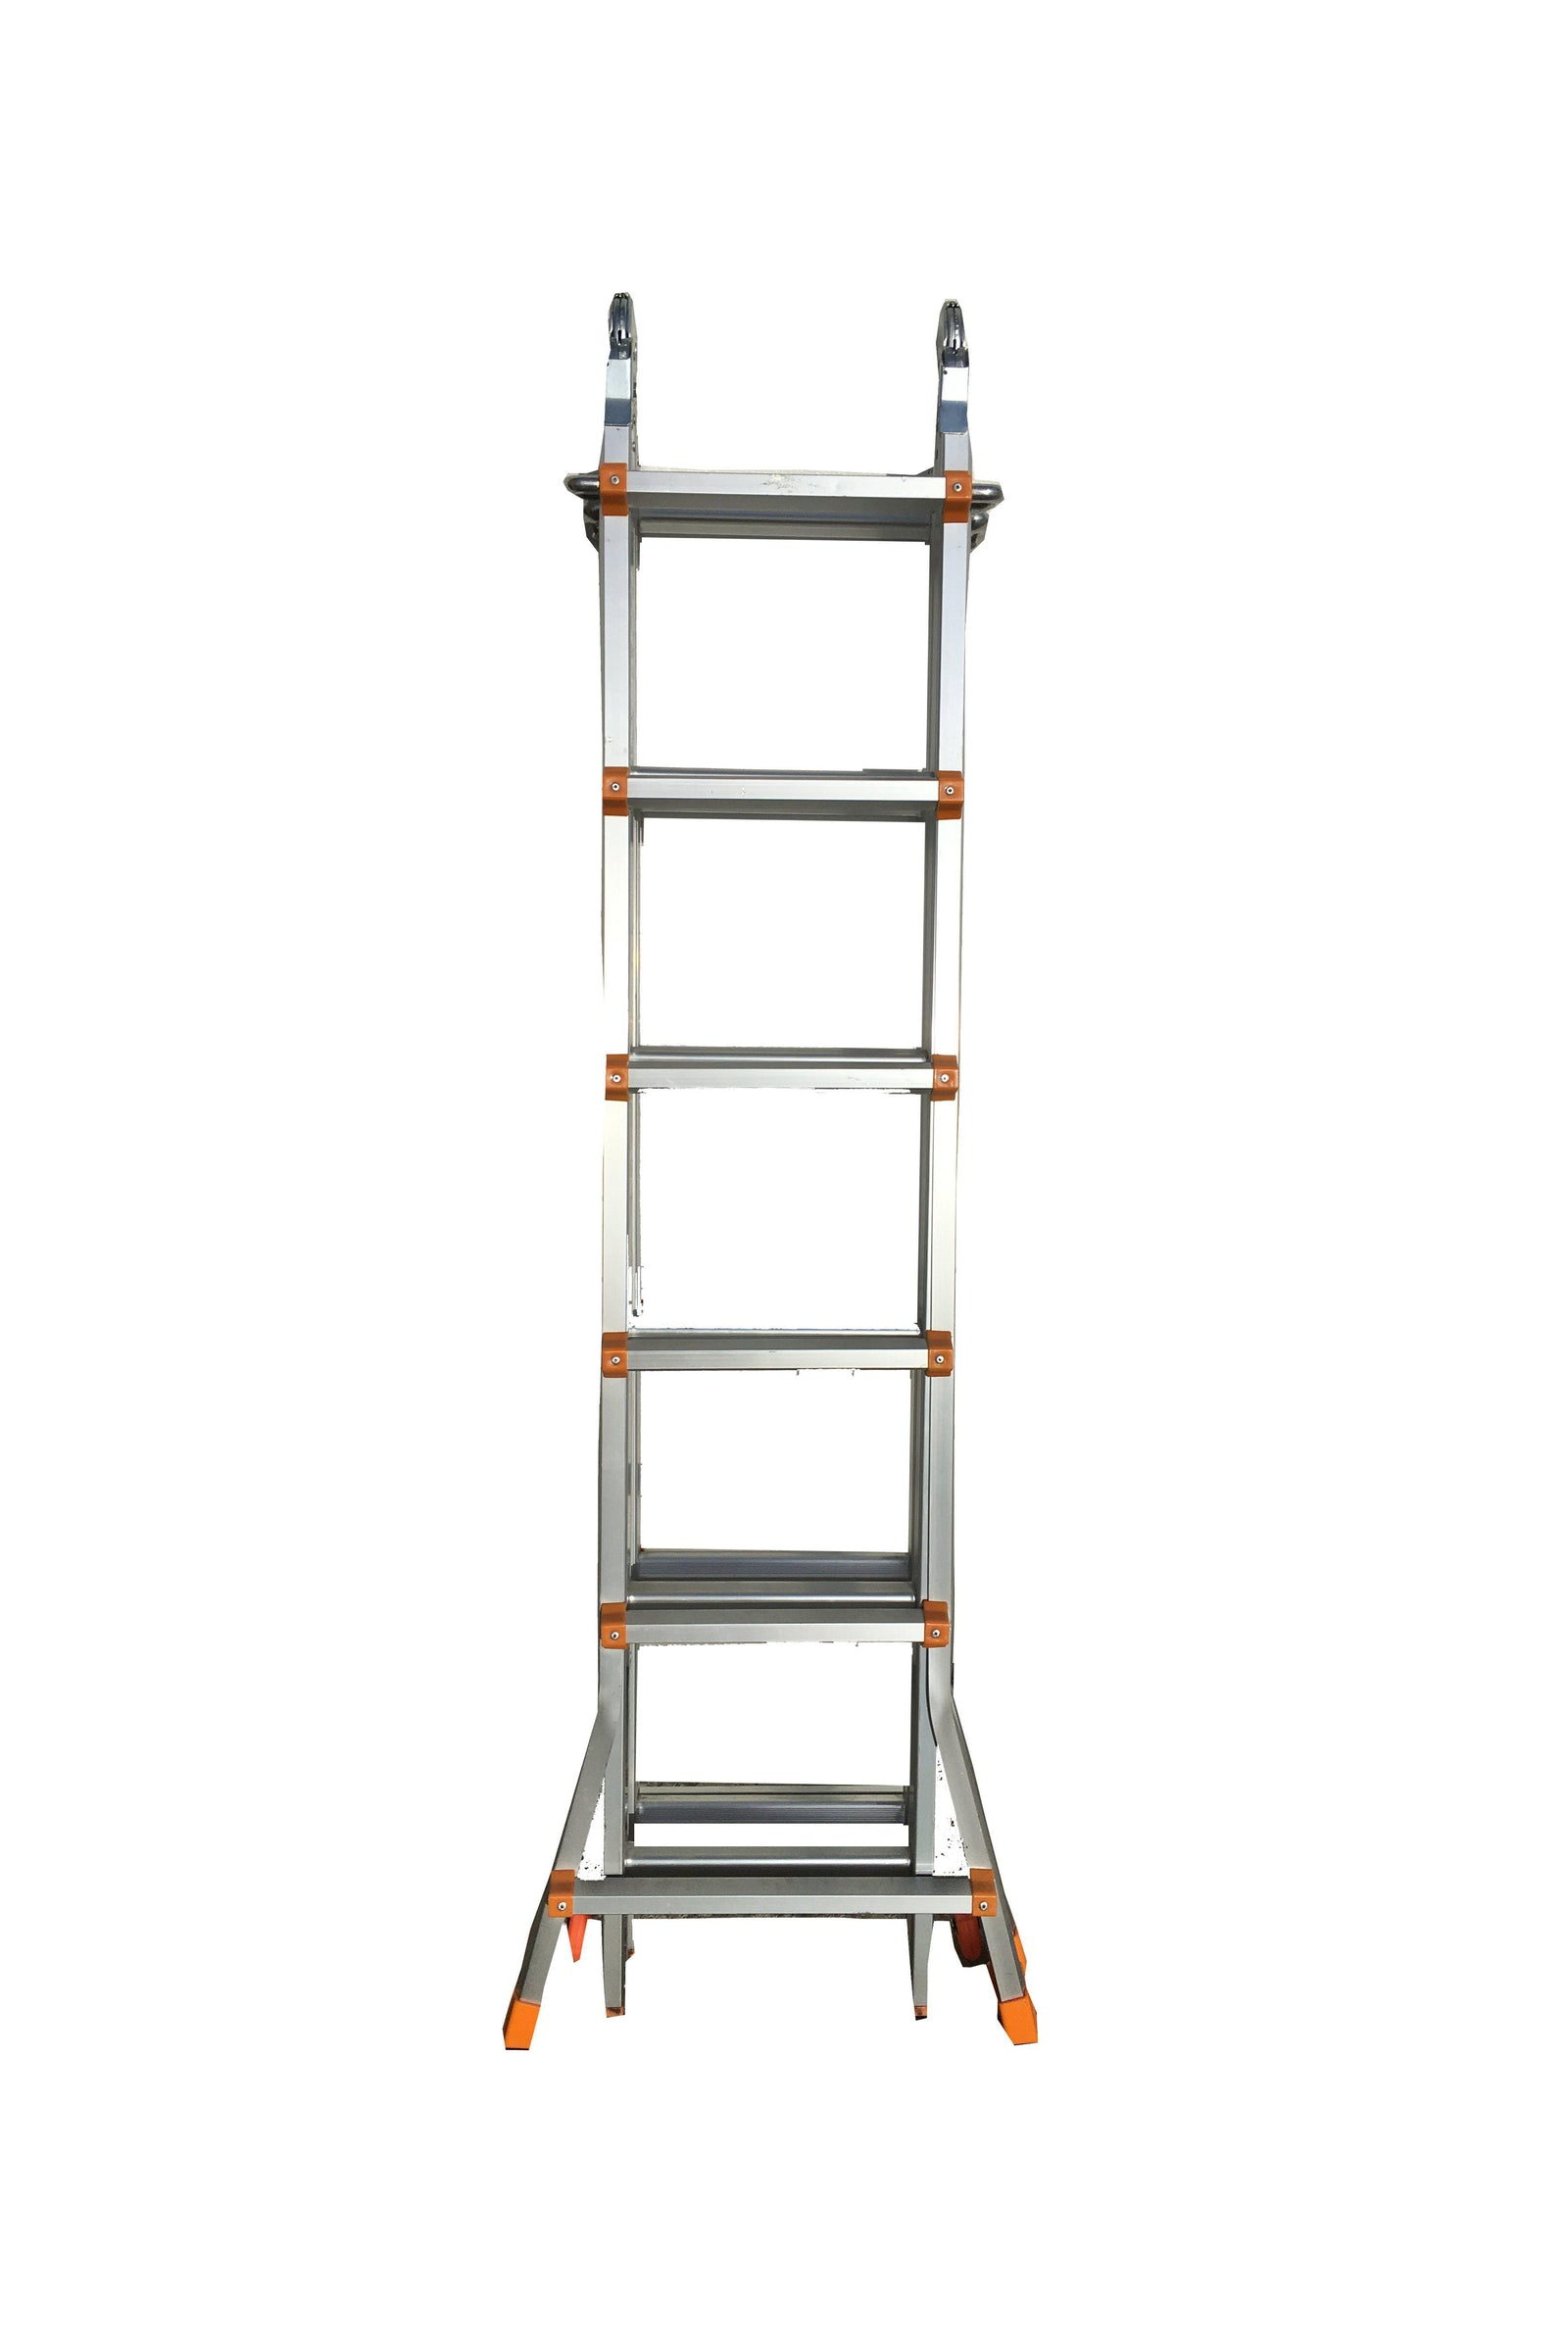 iQ Ladder A Frame 20.4 FT-Redfern.ent